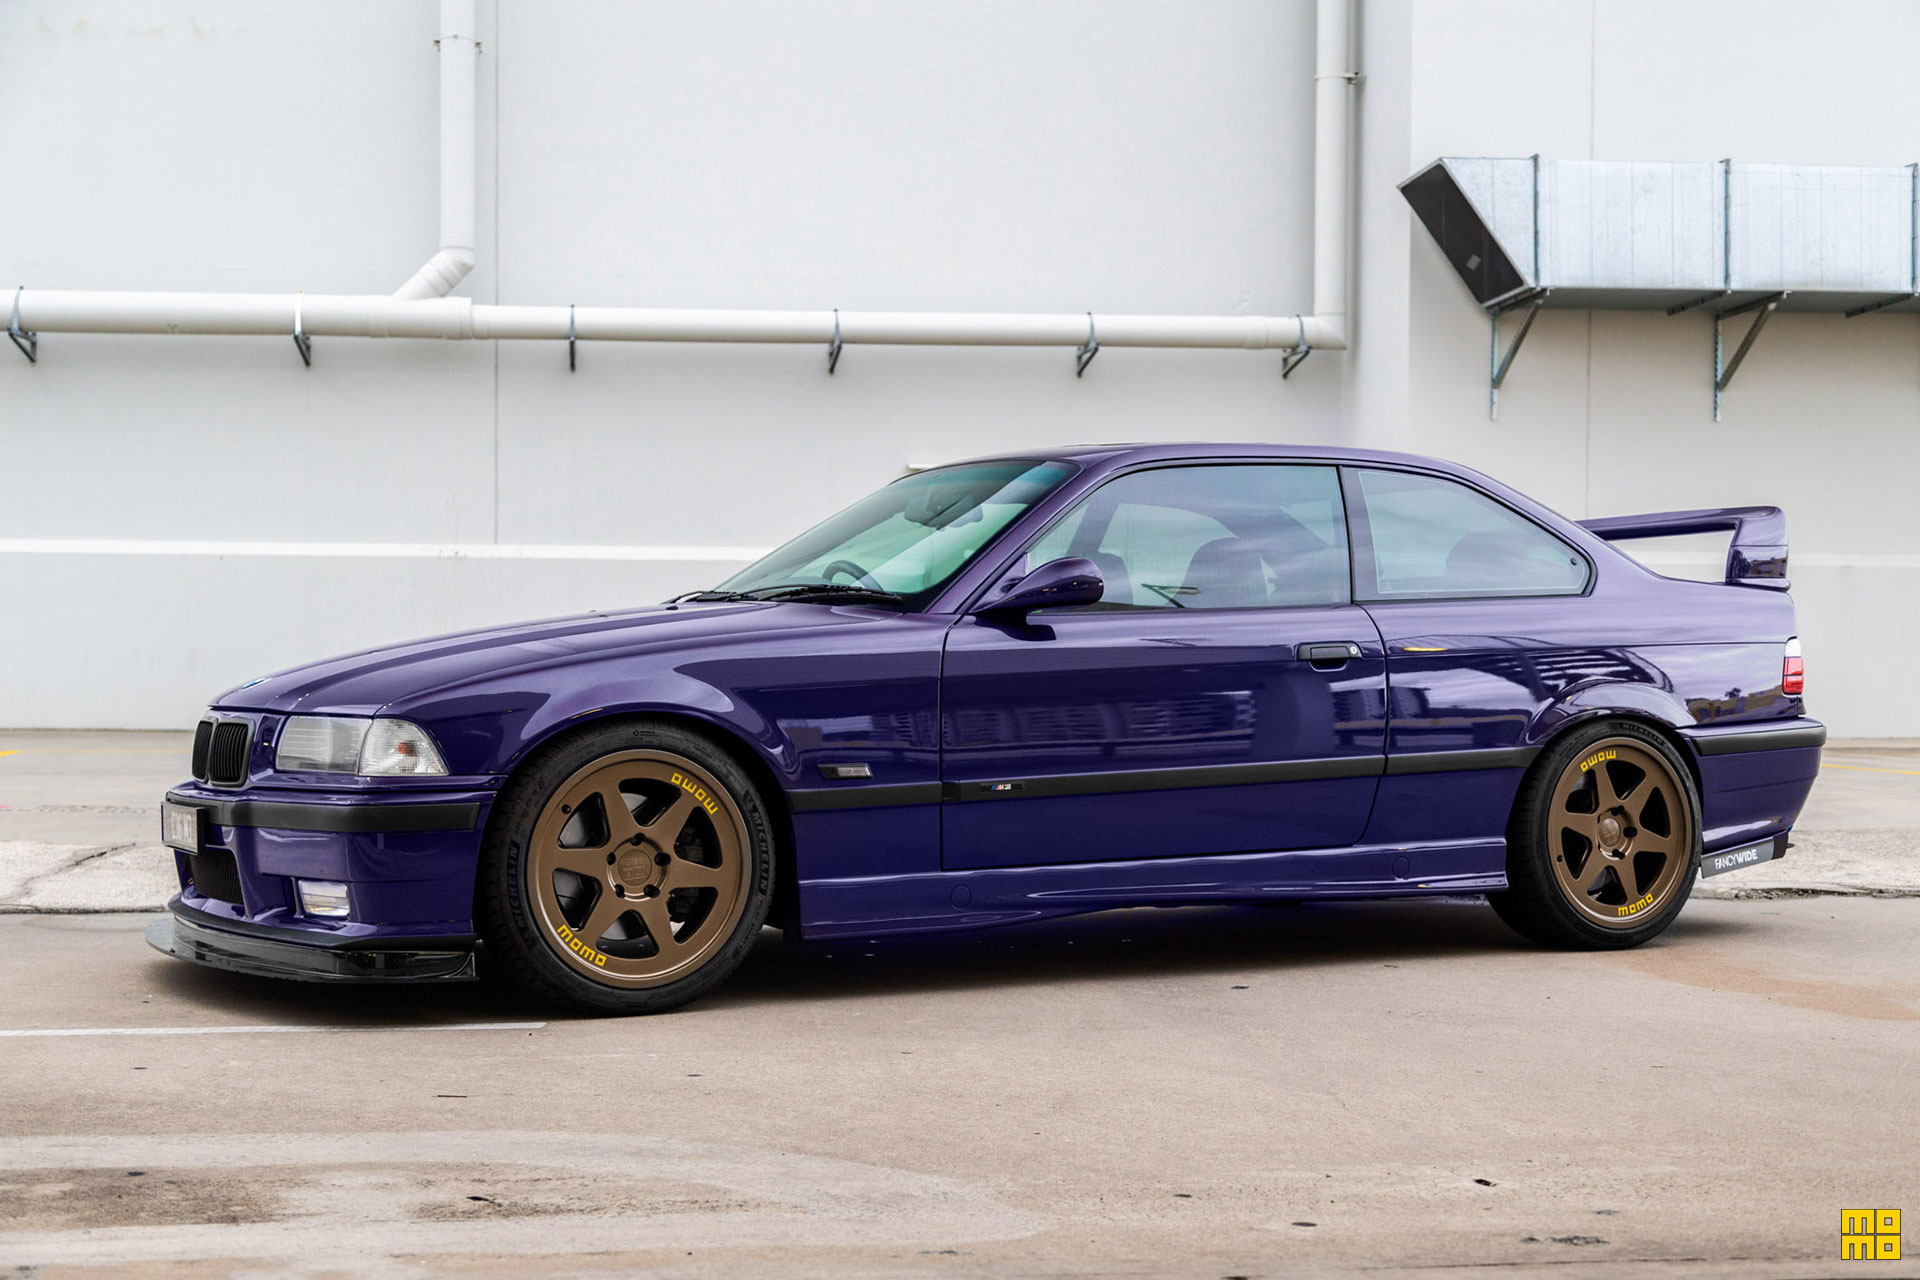 Techno Violet Purple BMW E36 M3 with MOMO Heritage 6 Wheels In Bronze